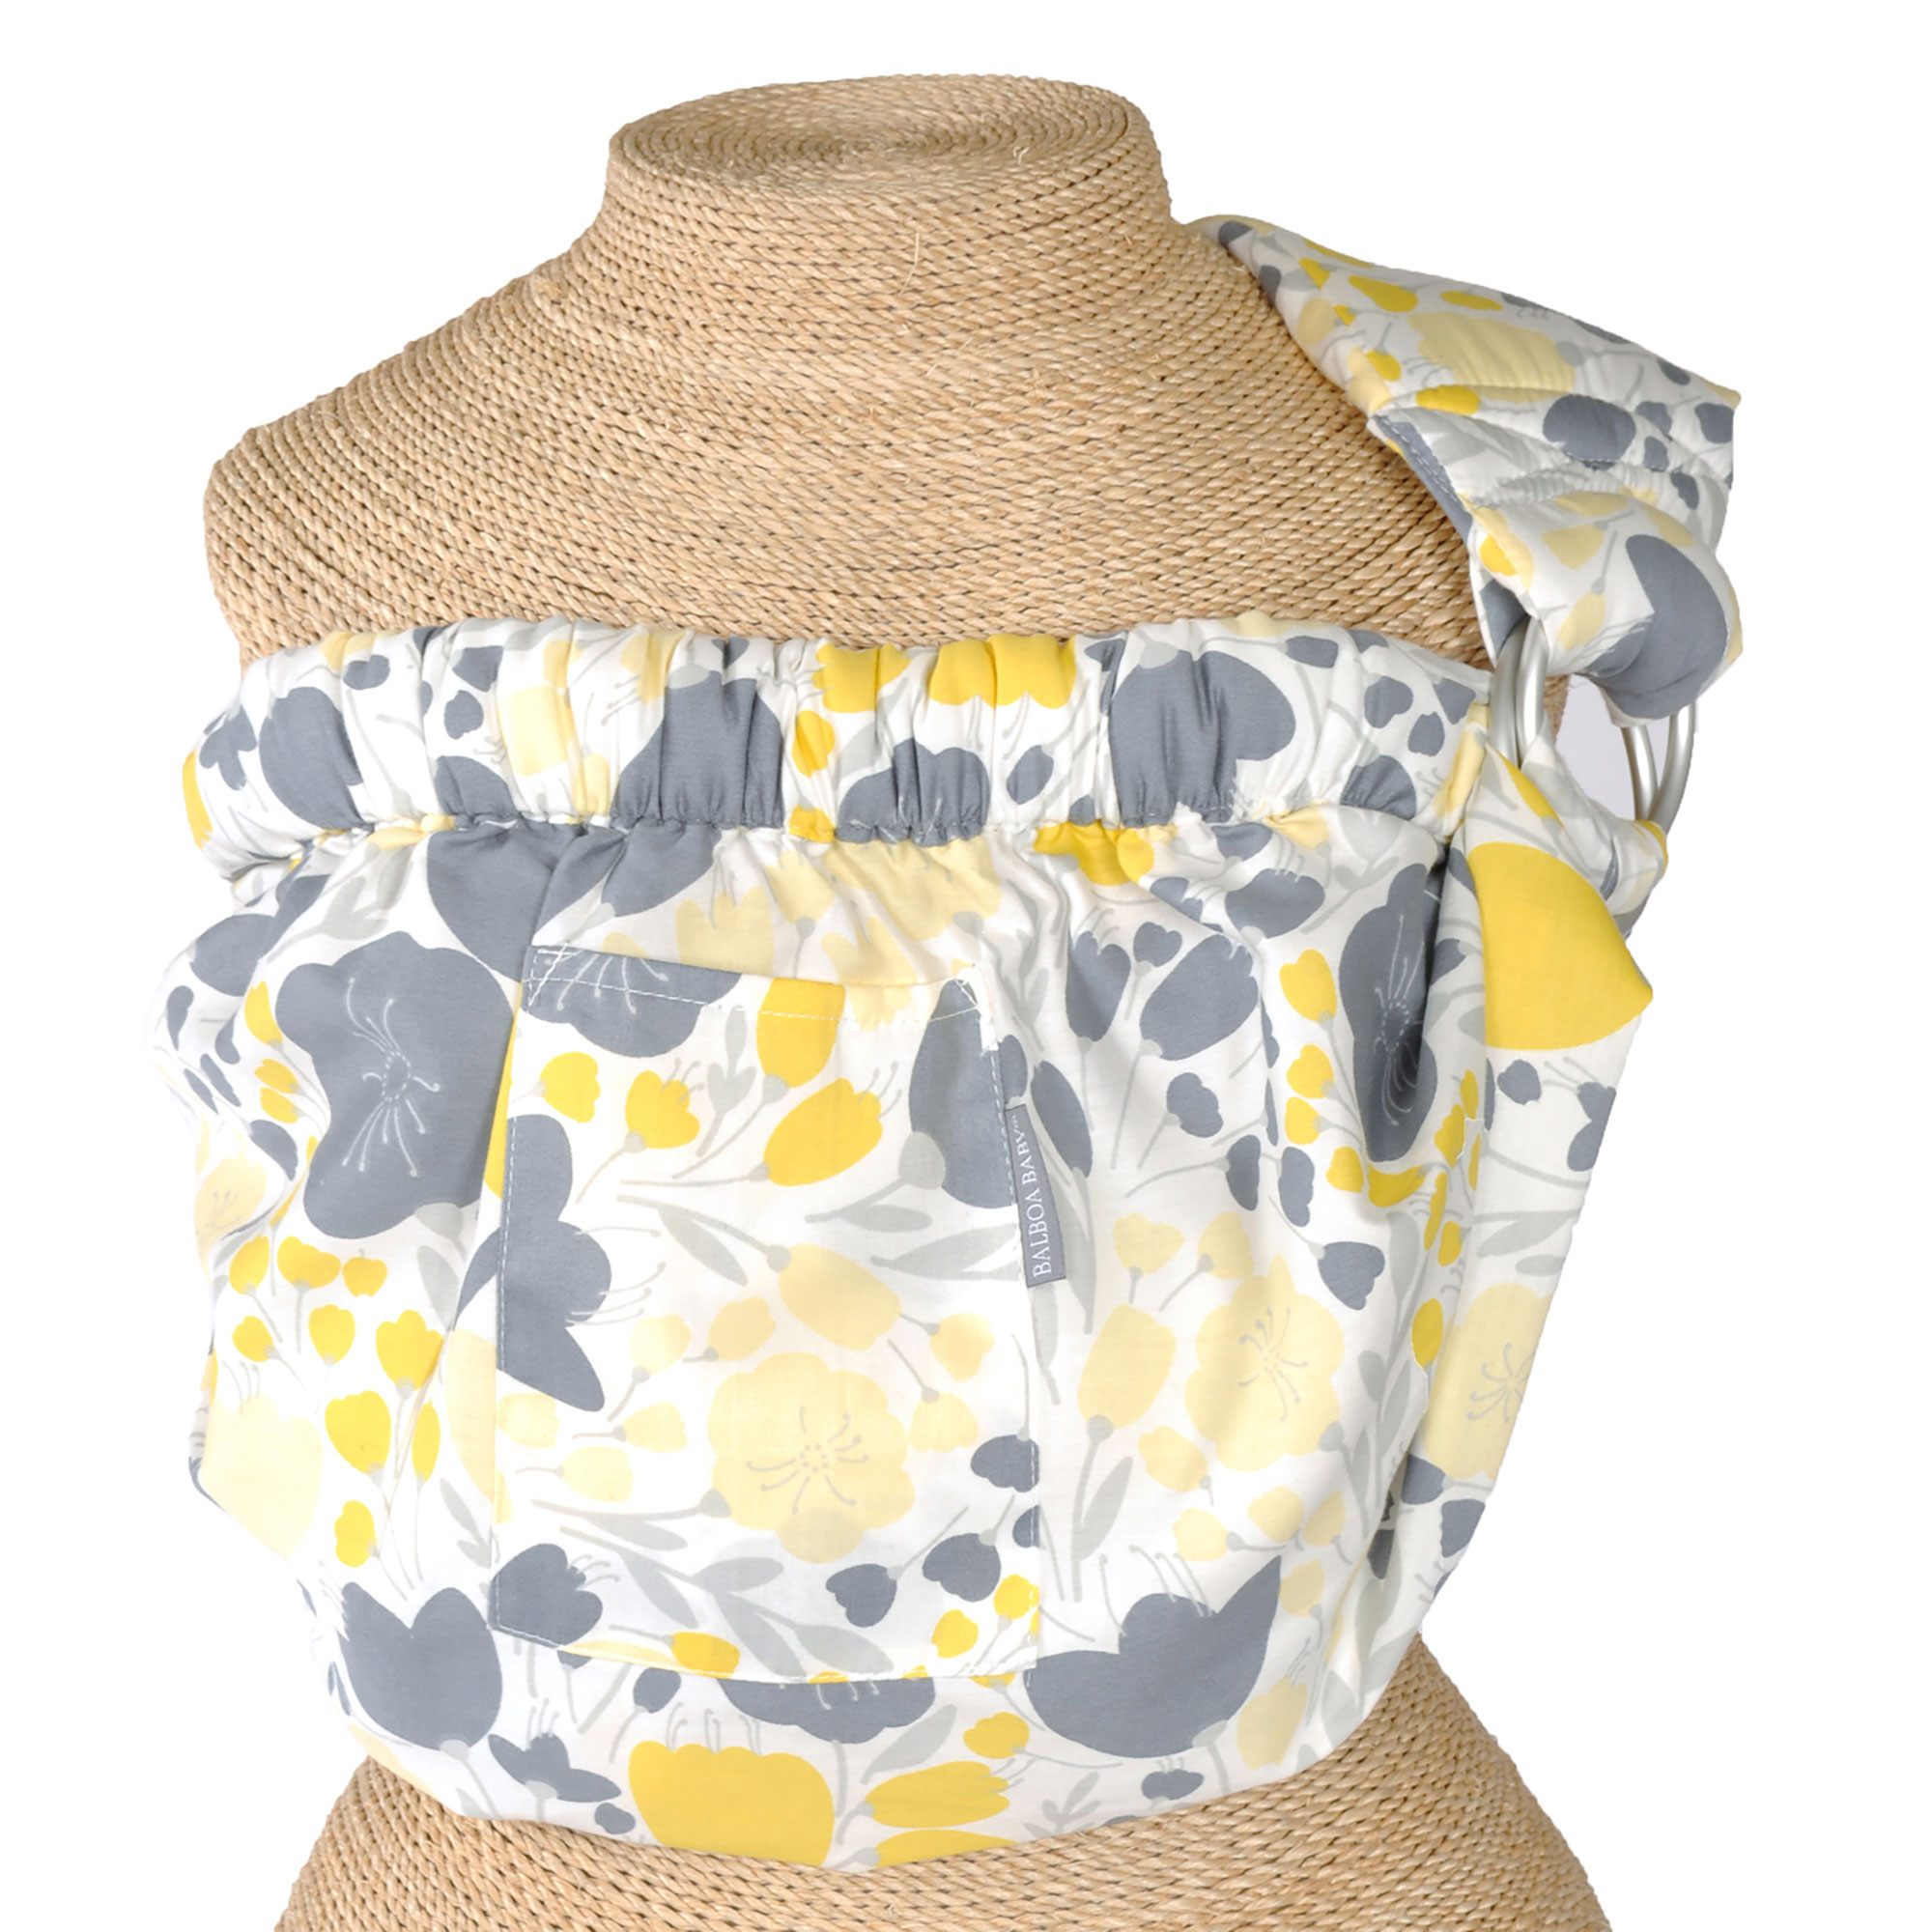 Balboa Baby Sling - Dr. Sears Adjustable Sling Carrier - Yellow Floral Design